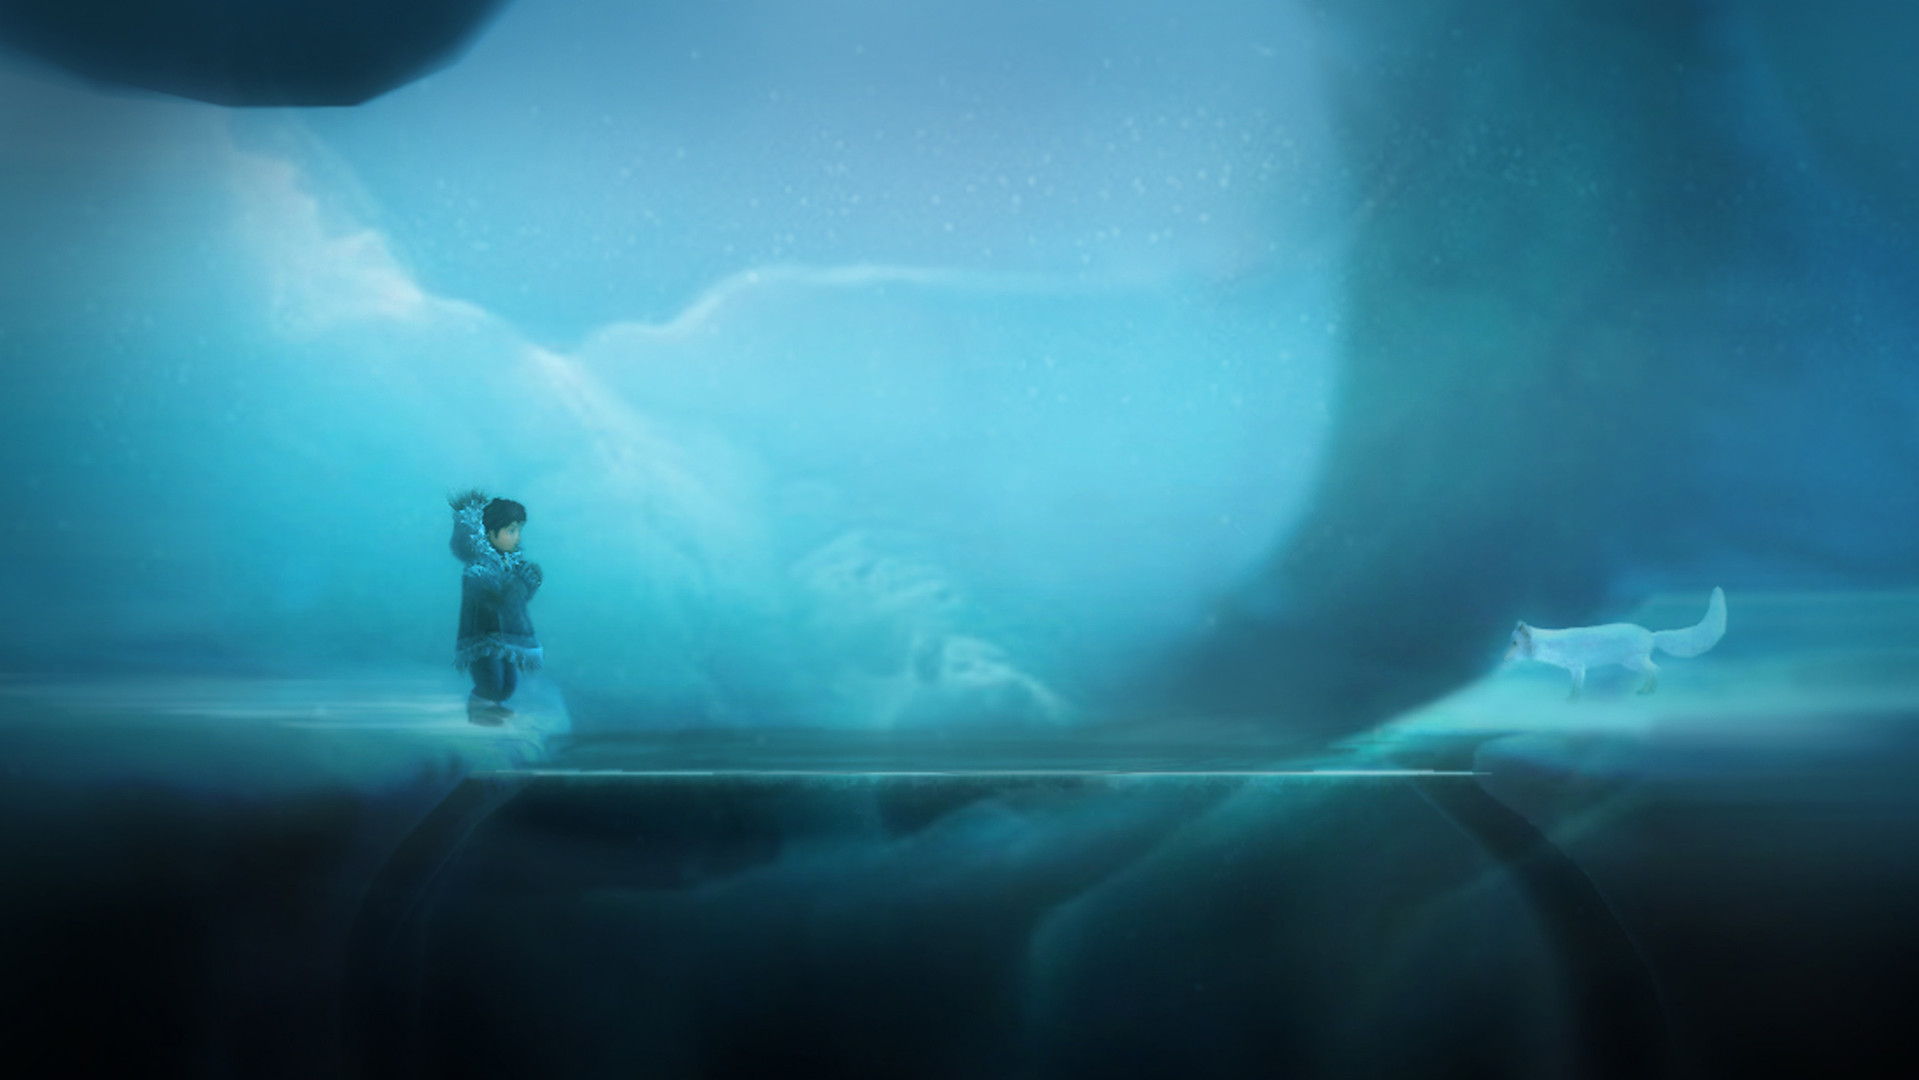 Скриншот *Never Alone - Arctic Collection [PS4] 5.05 / 6.72 / 7.02 [EUR] (2014) [Русский] (v1.04)*